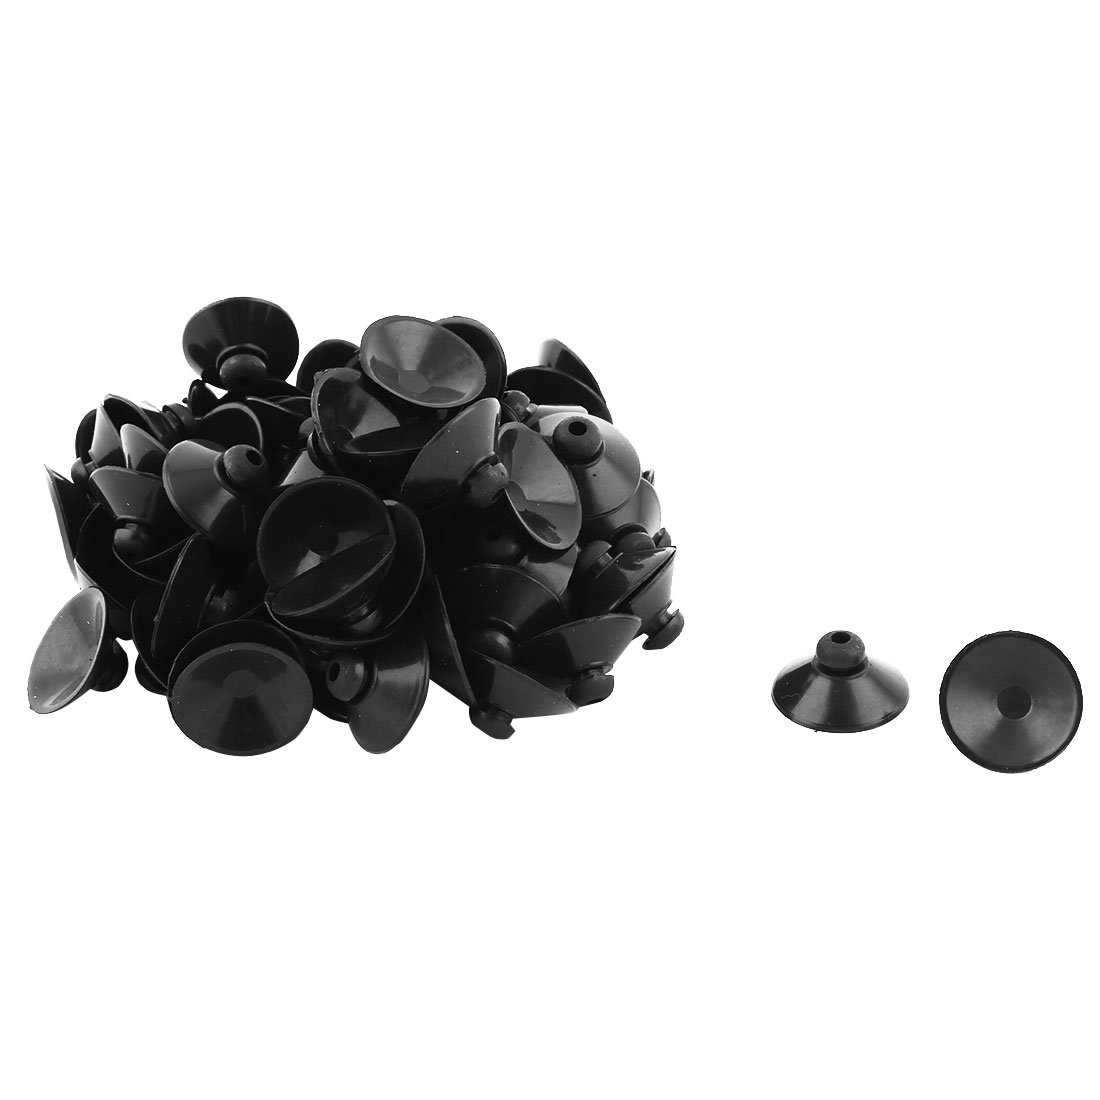 uxcell Rubber Household Round Window Glass Sucker Suction Cup Hanger Pads 90 Pcs Black